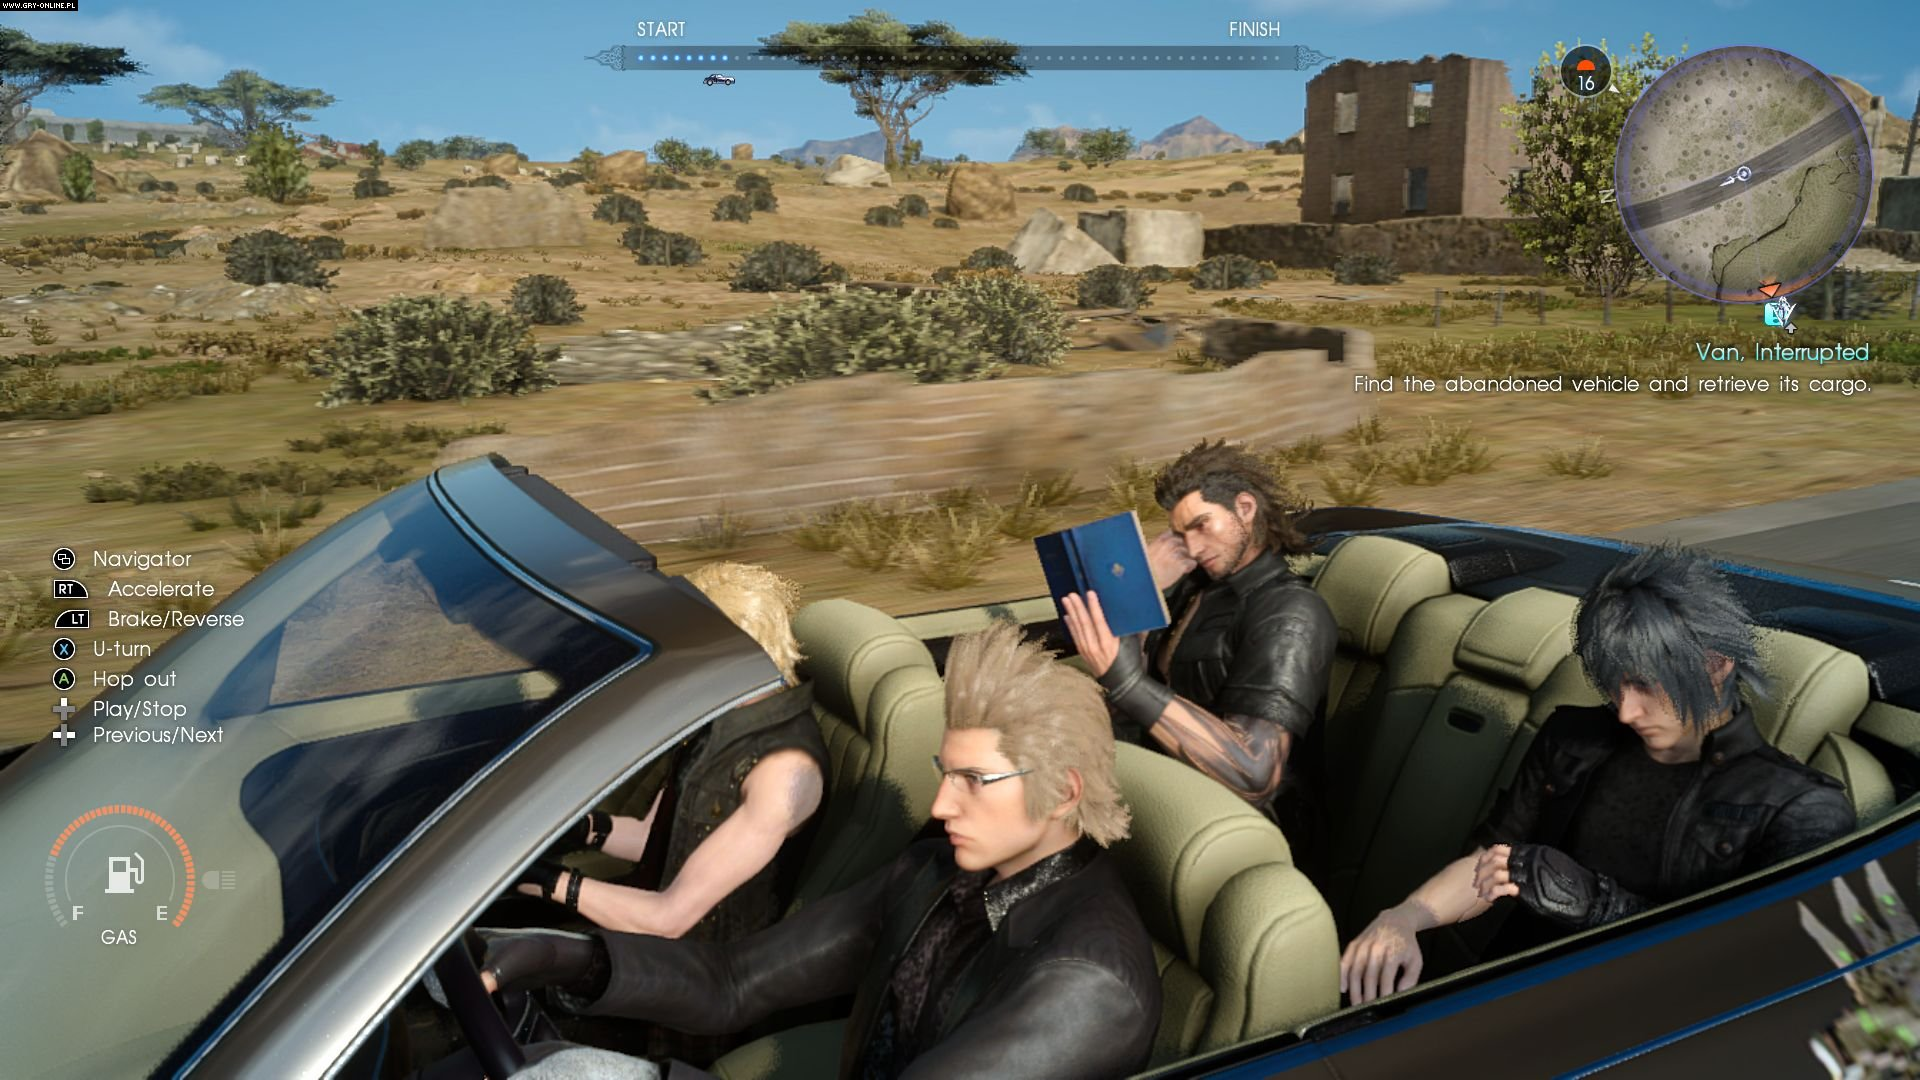 Final Fantasy XV PS4, XONE Gry Screen 64/393, Square-Enix / Eidos